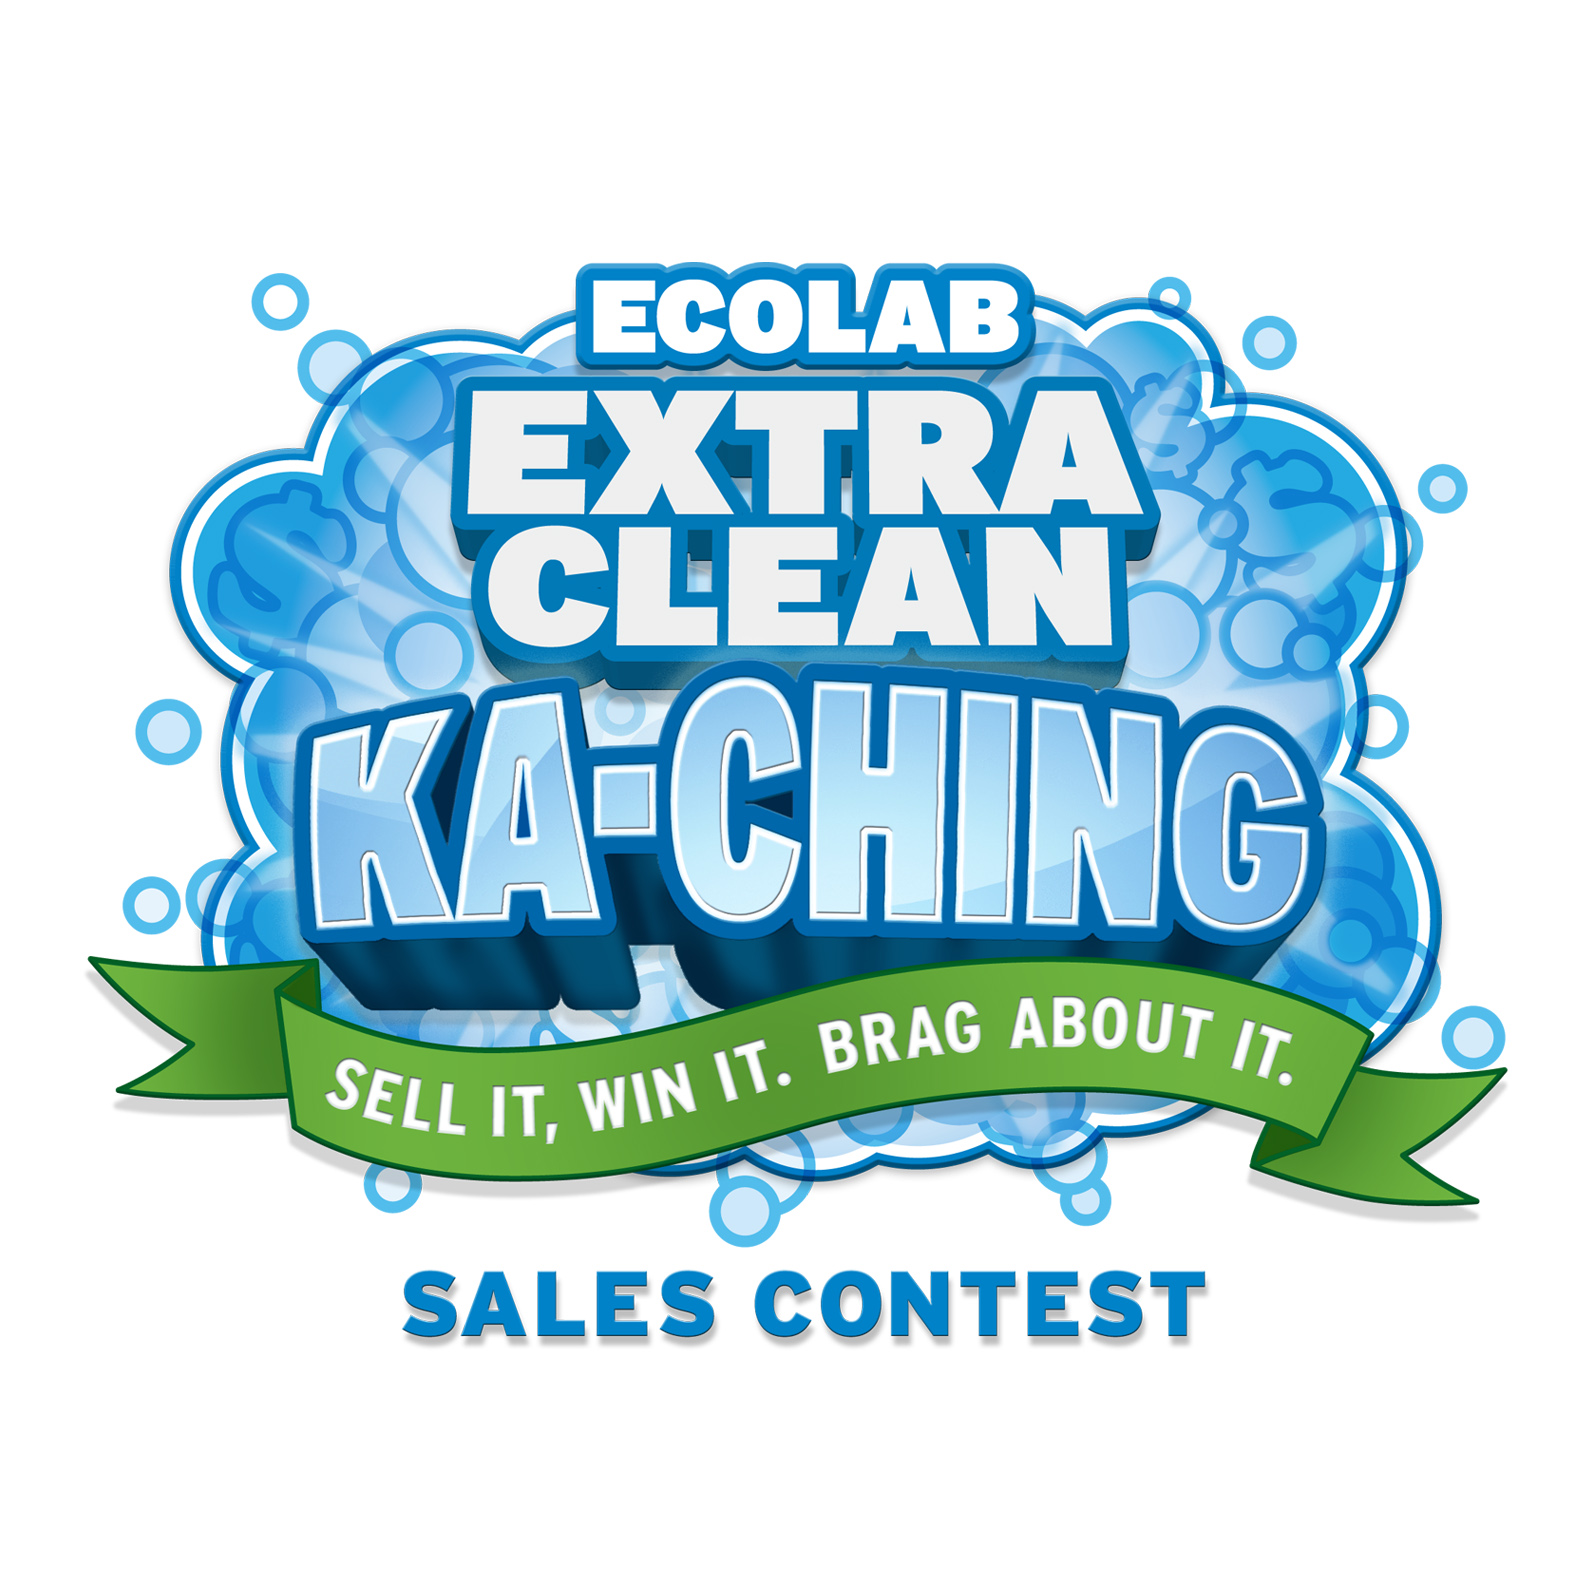 Ecolab Sales Contest Graphic